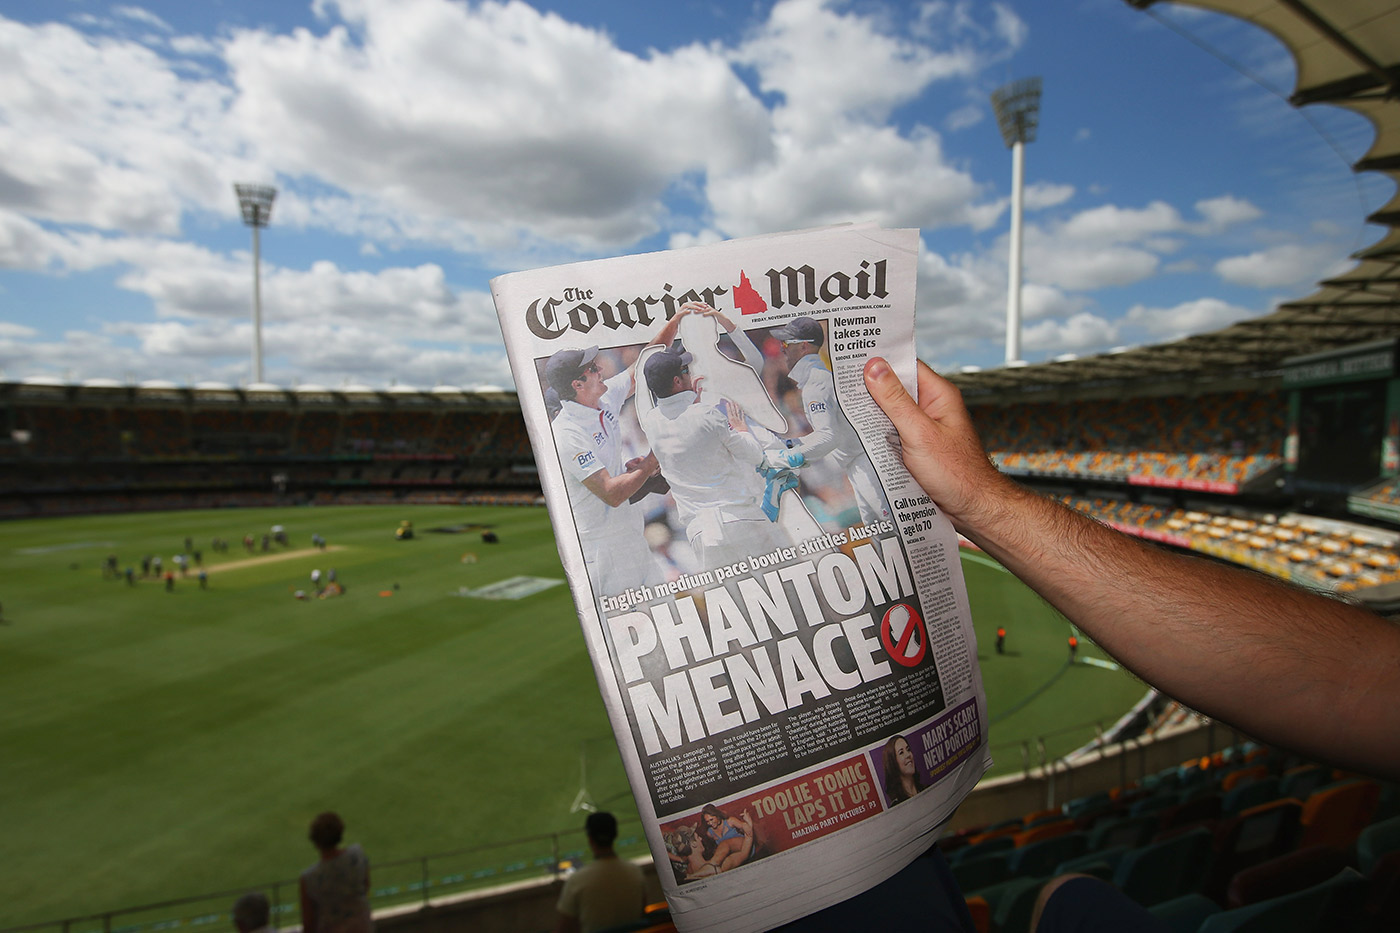 Embedded reportage: remember when the <i>Courier-Mail</i> forgot Stuart Broad's name?